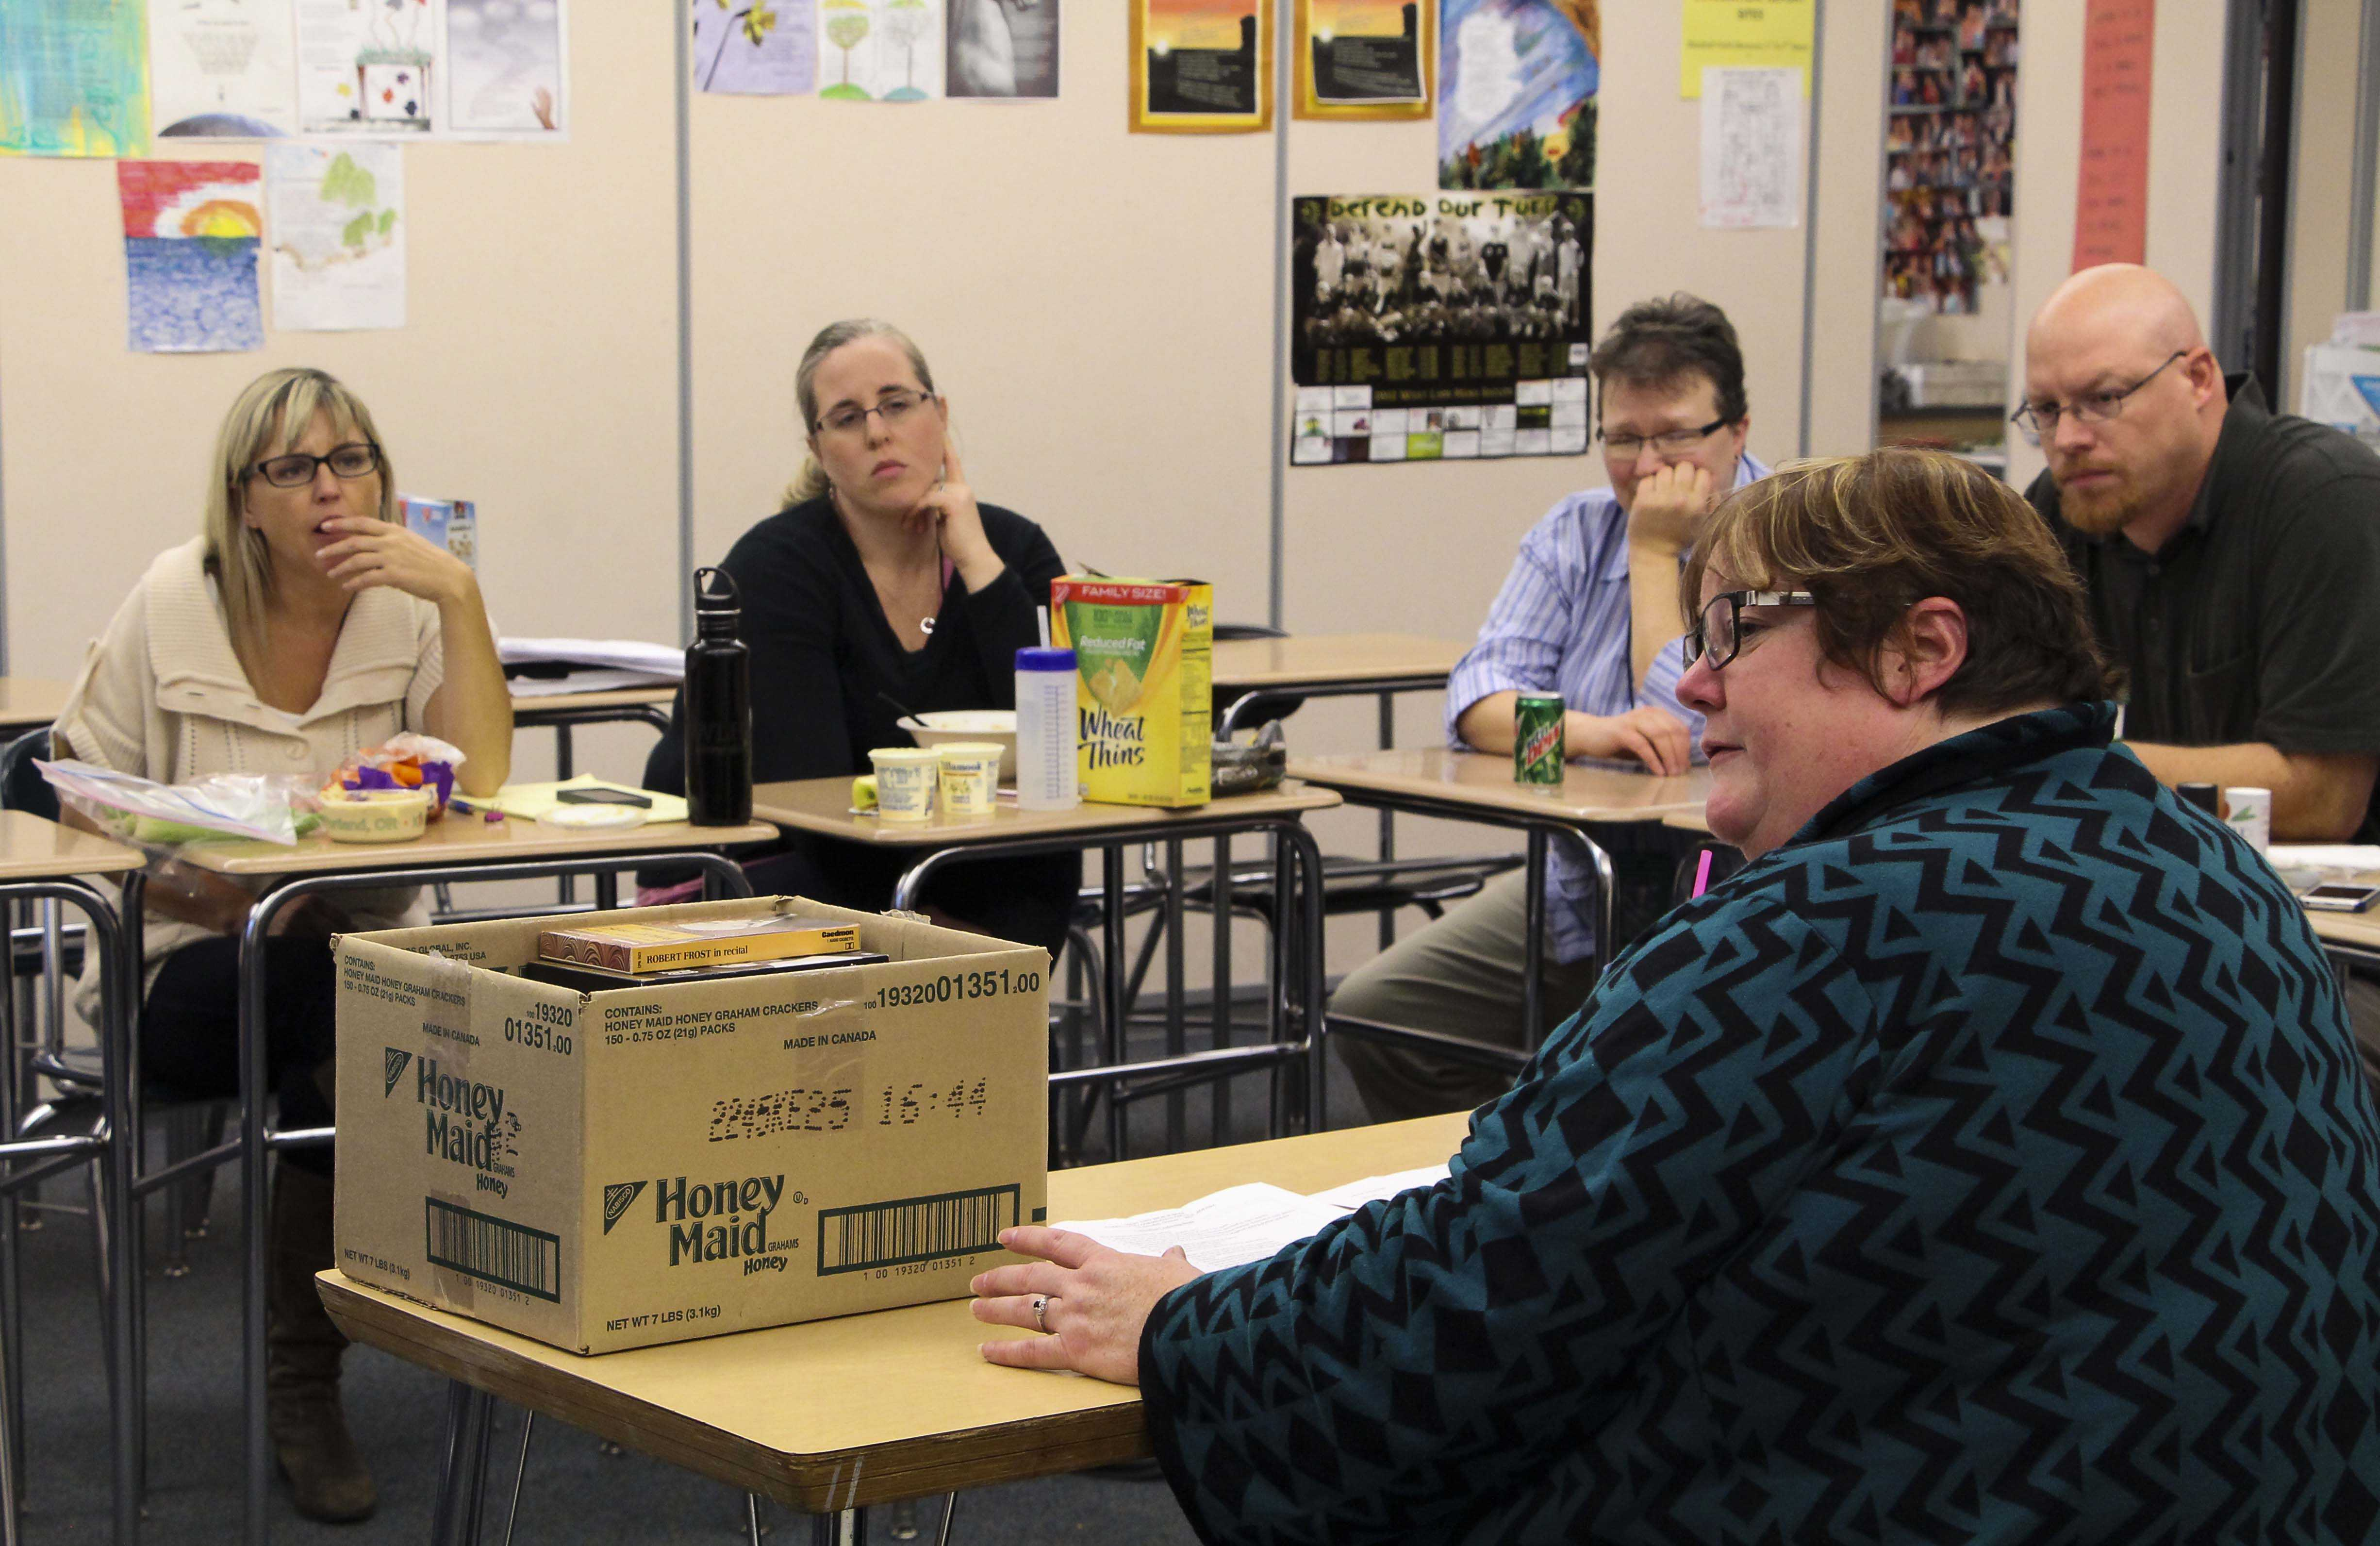 English teachers meet to discuss new changes to the WLHS's english classes due to Common Core. These standards provided to the U.S. educational systems have affected the school in many departments.